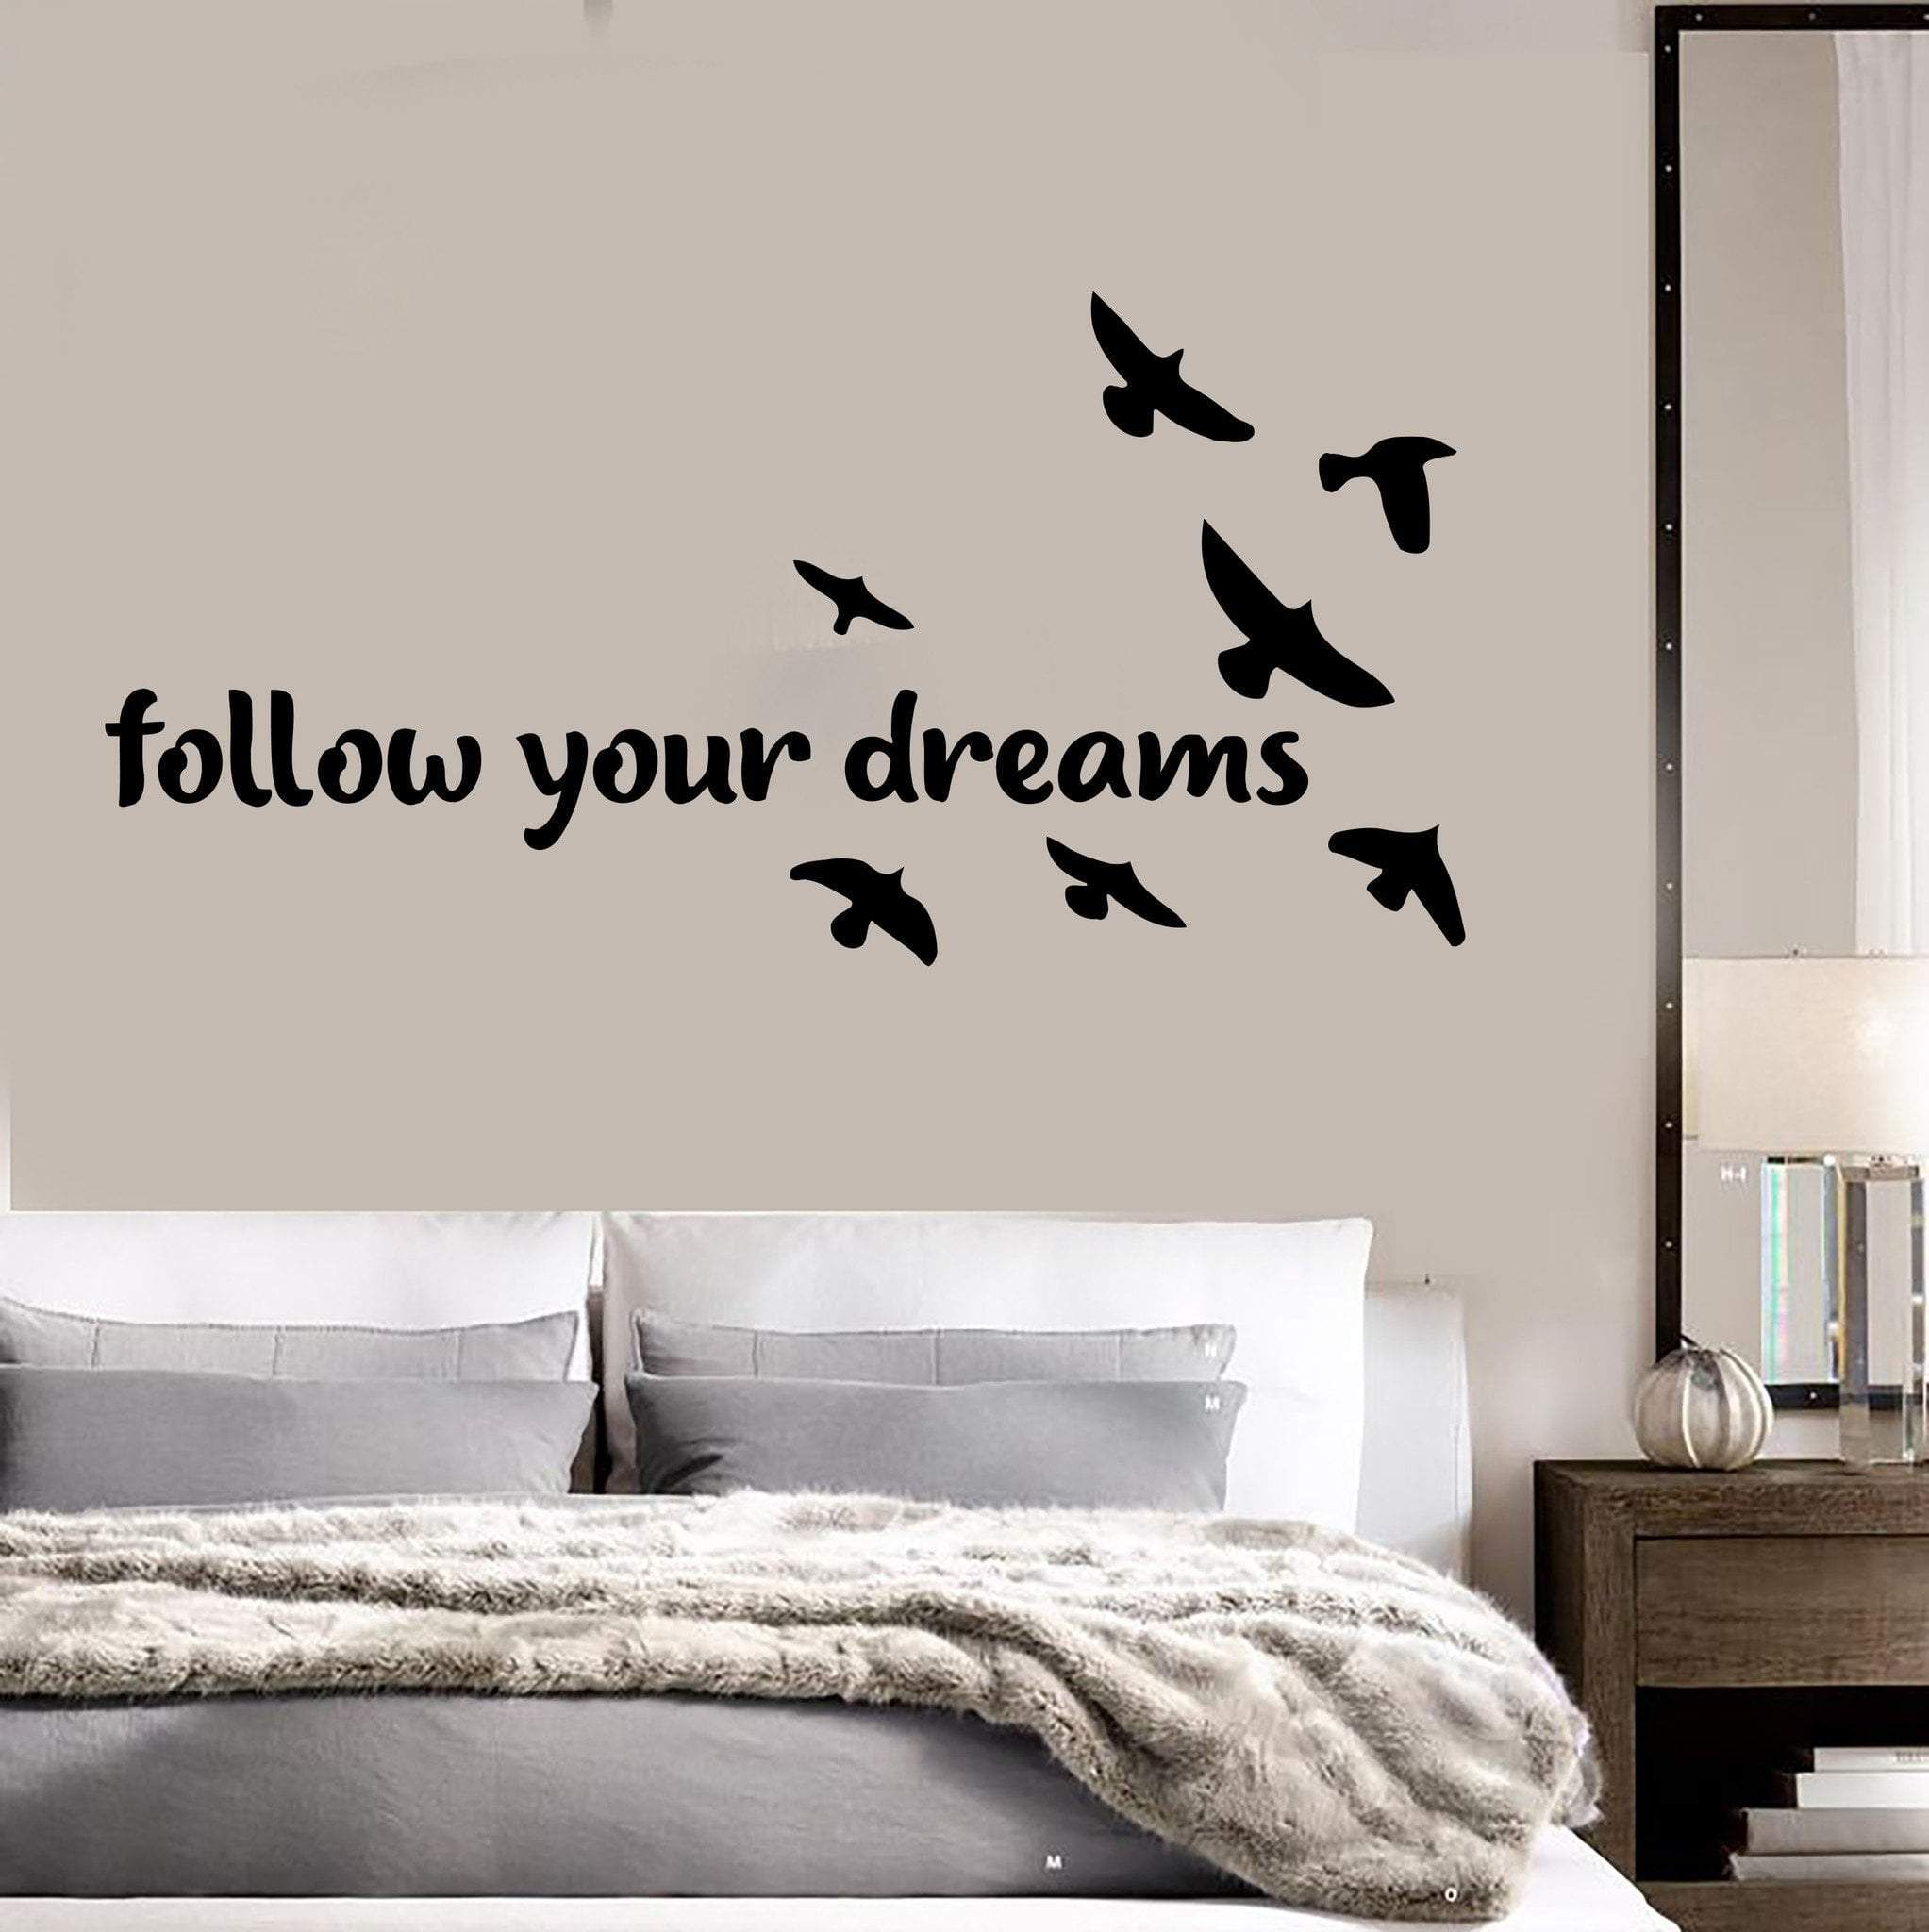 Vinyl Wall Decal Bedroom Quote Birds Dreams Home Art Stickers Unique Gift Ig3683 Wall Decals For Bedroom Vinyl Wall Decals Bedroom Wall Stickers Bedroom